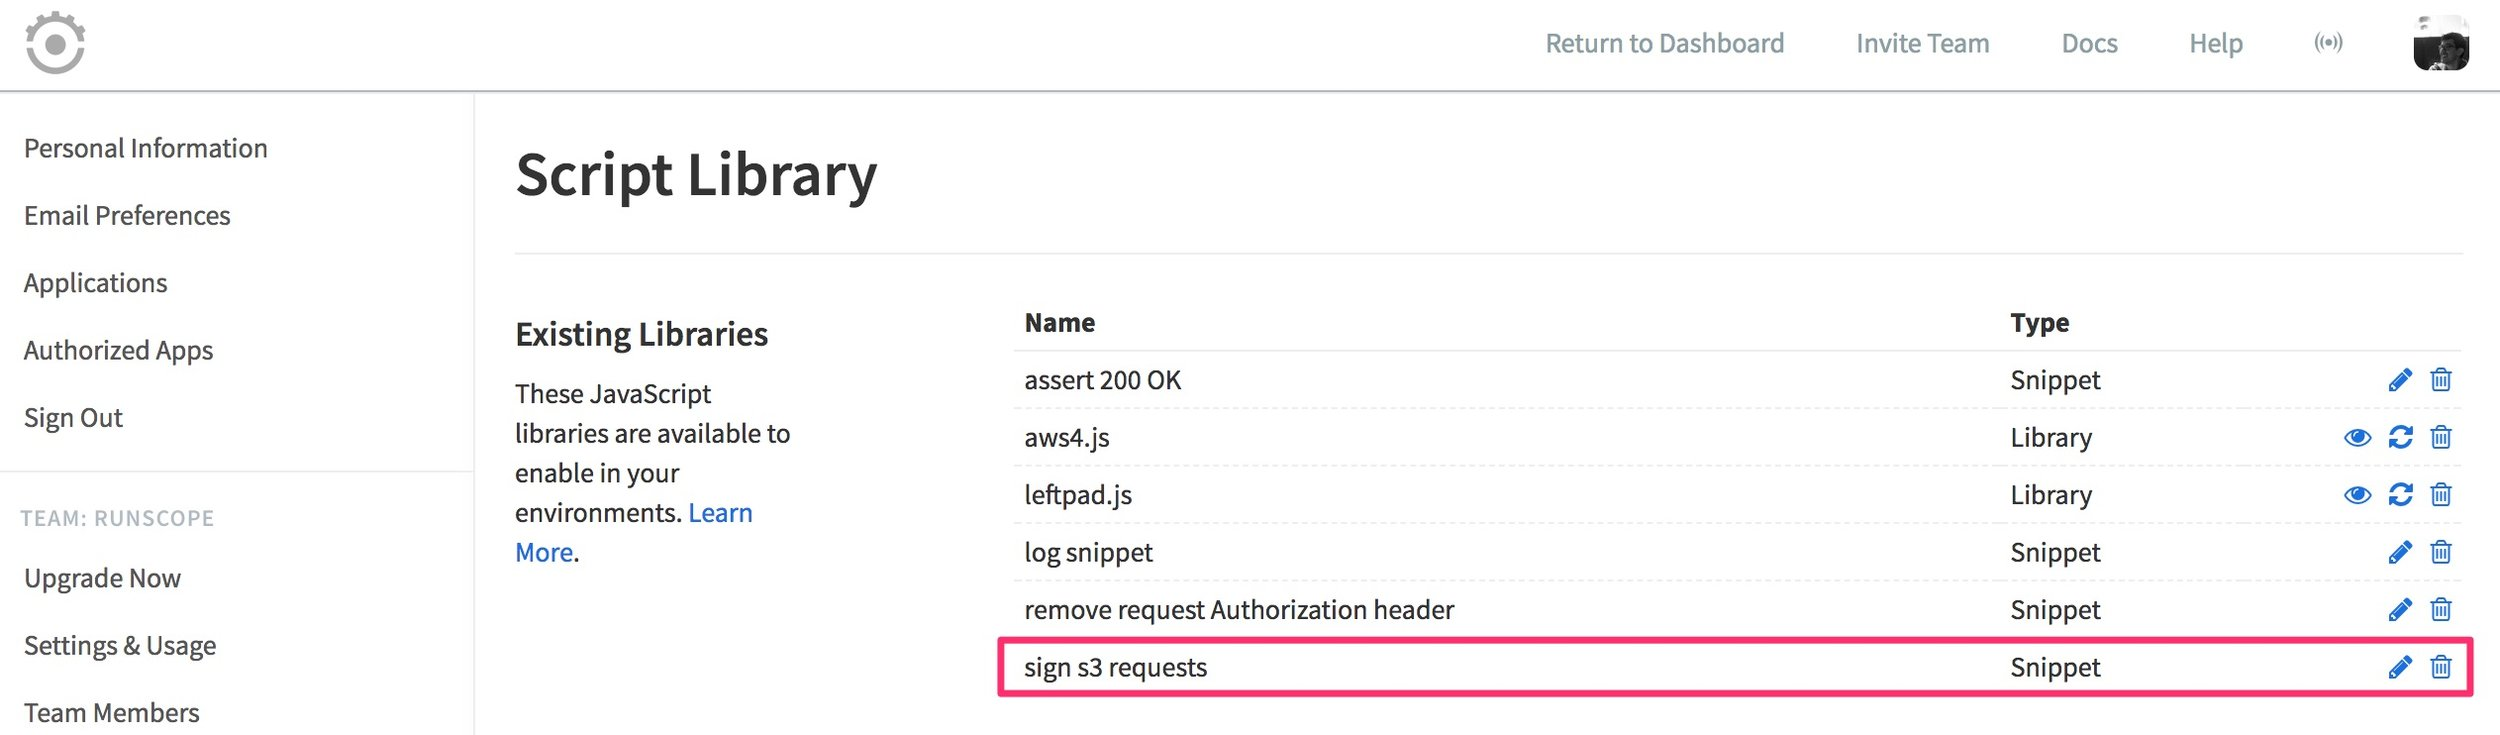 """Showing the Script Library page, and the Existing Libraries section that was shown in a previous image now includes the new Snippet """"sign s3 requests"""" in its list."""